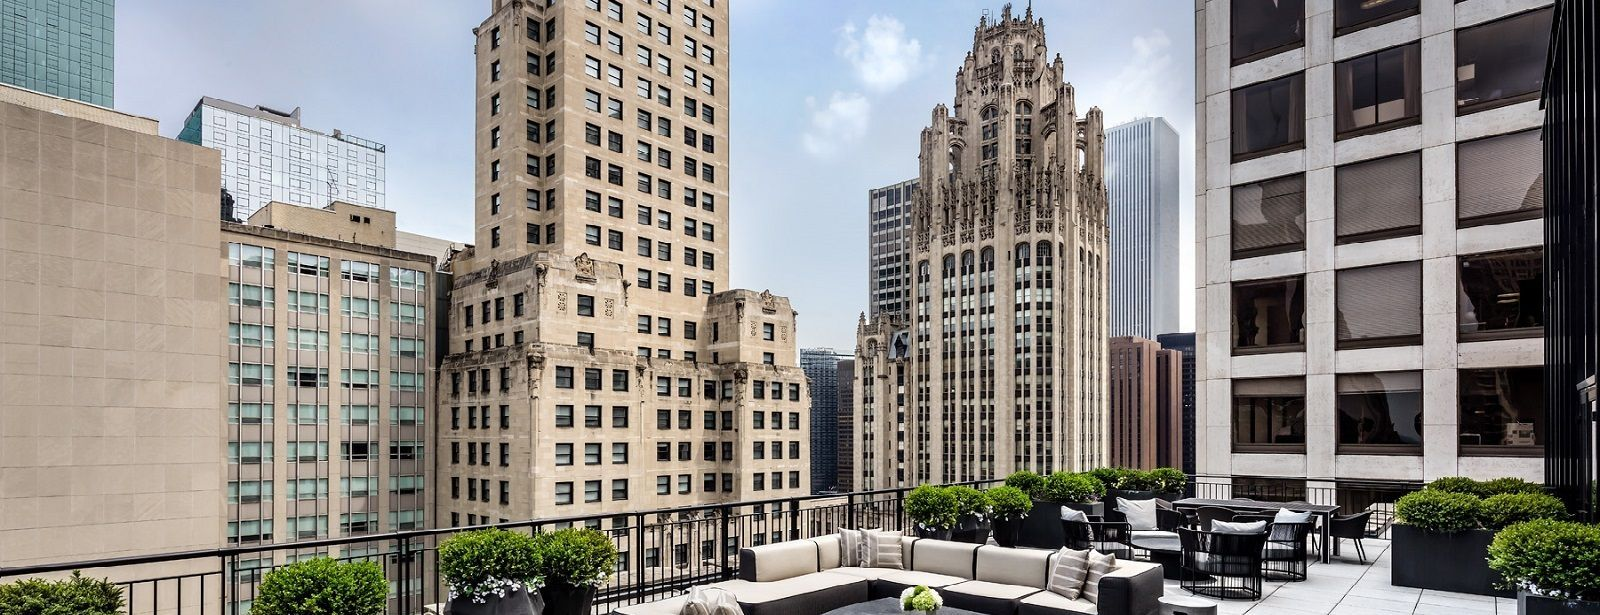 Hotel Rooms in Chicago - Gwen Lux Suite Terrace